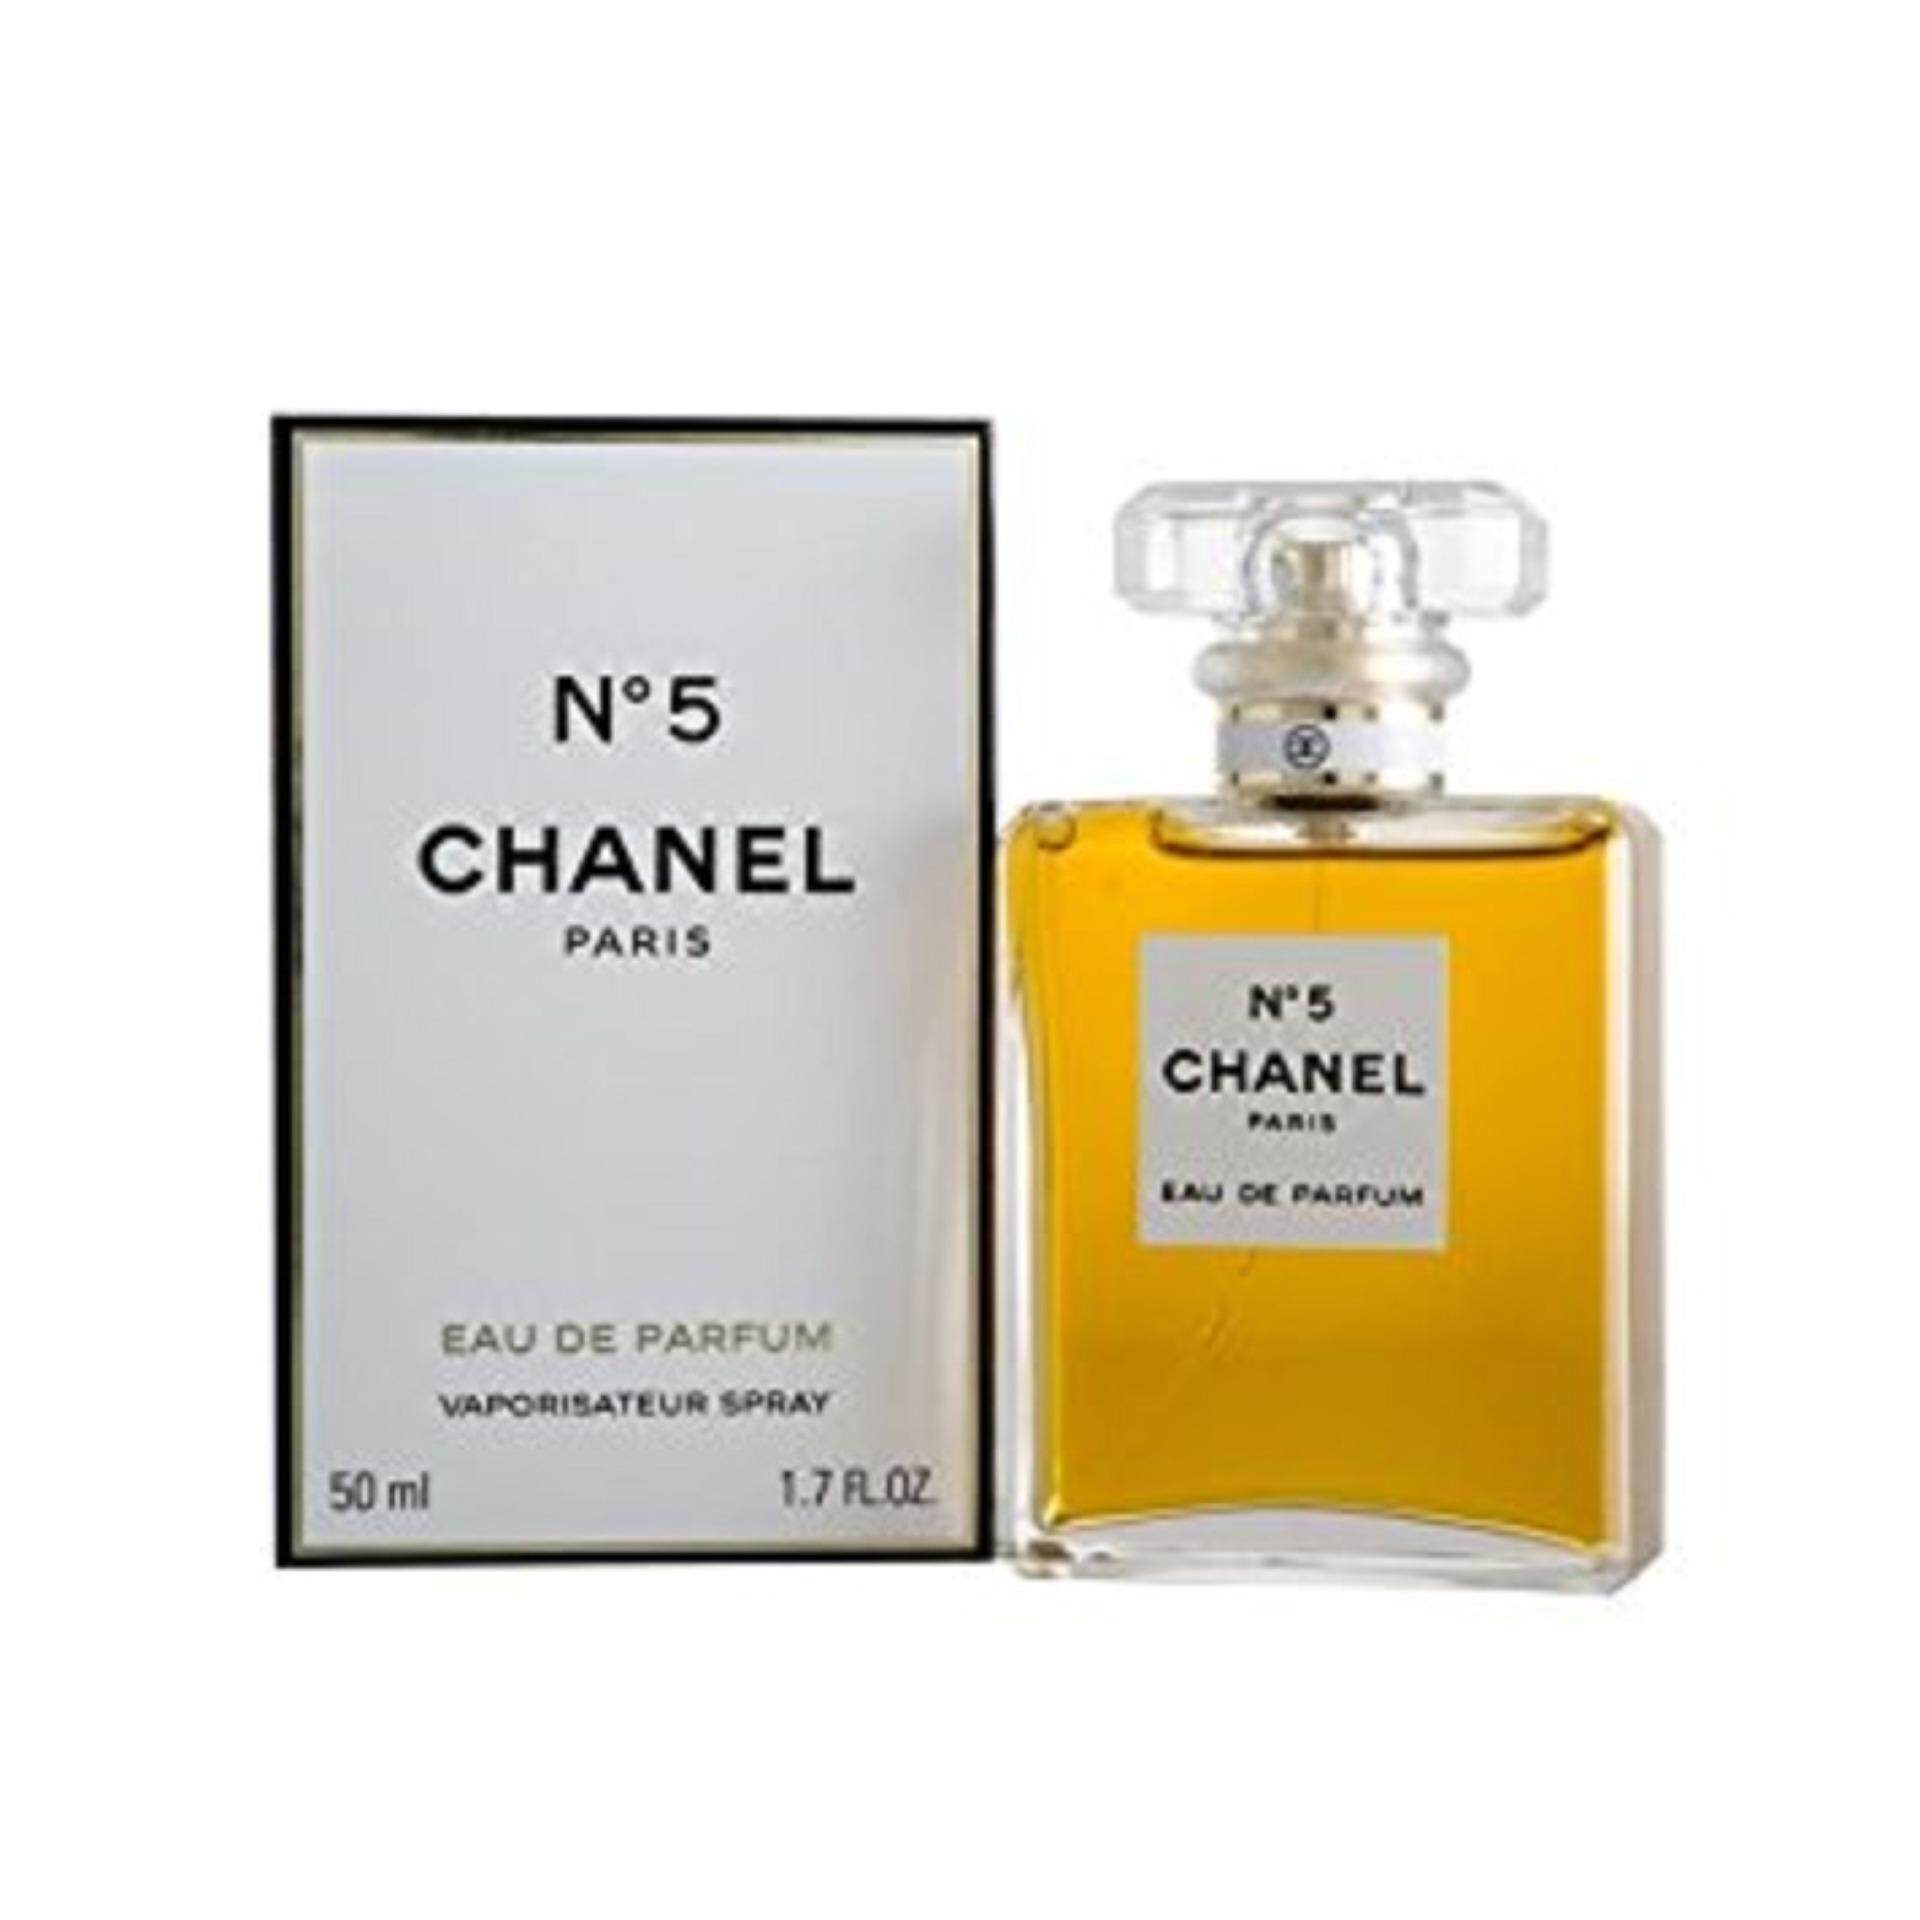 Chanel No 5 Perfume Parfum 50ml Large Bottle 17oz 50ml Clearance